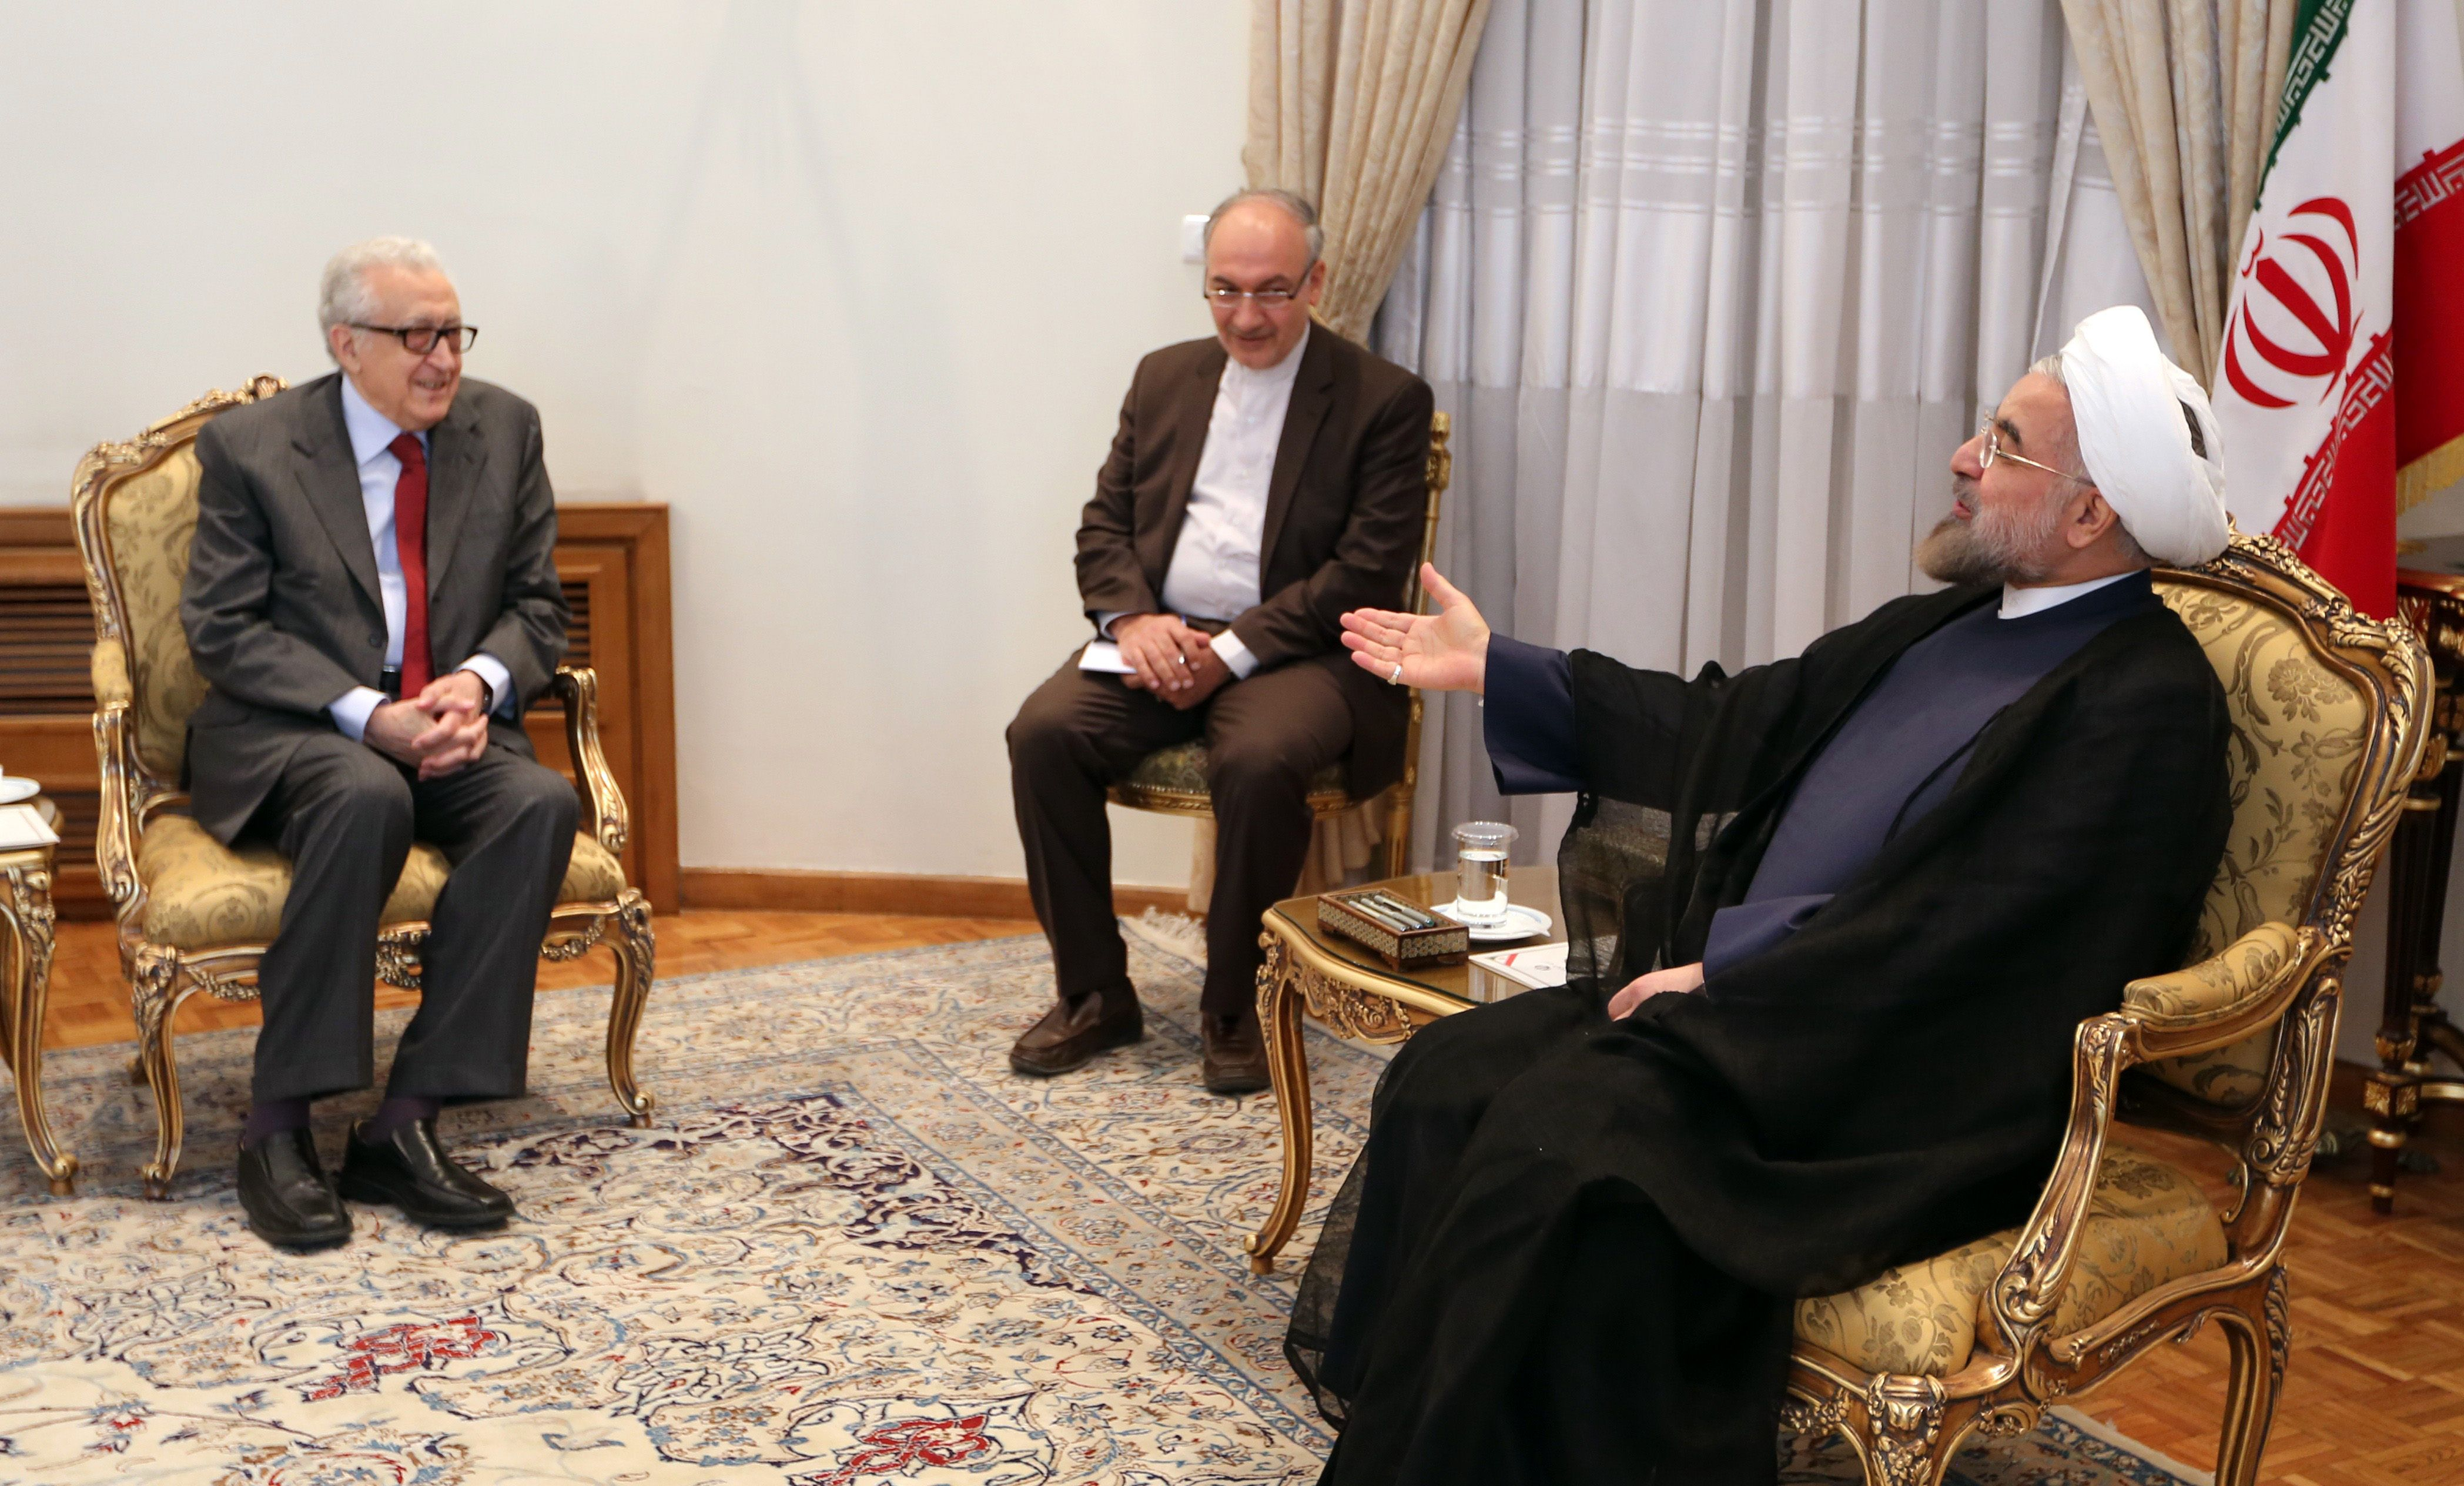 Iranian President Hassan Rouhani (R) meets with International Peace envoy to Syria Lakhdar Brahimi (L) in Tehran on October 27, 2013. (AFP PHOTO/ATTA KENARE)